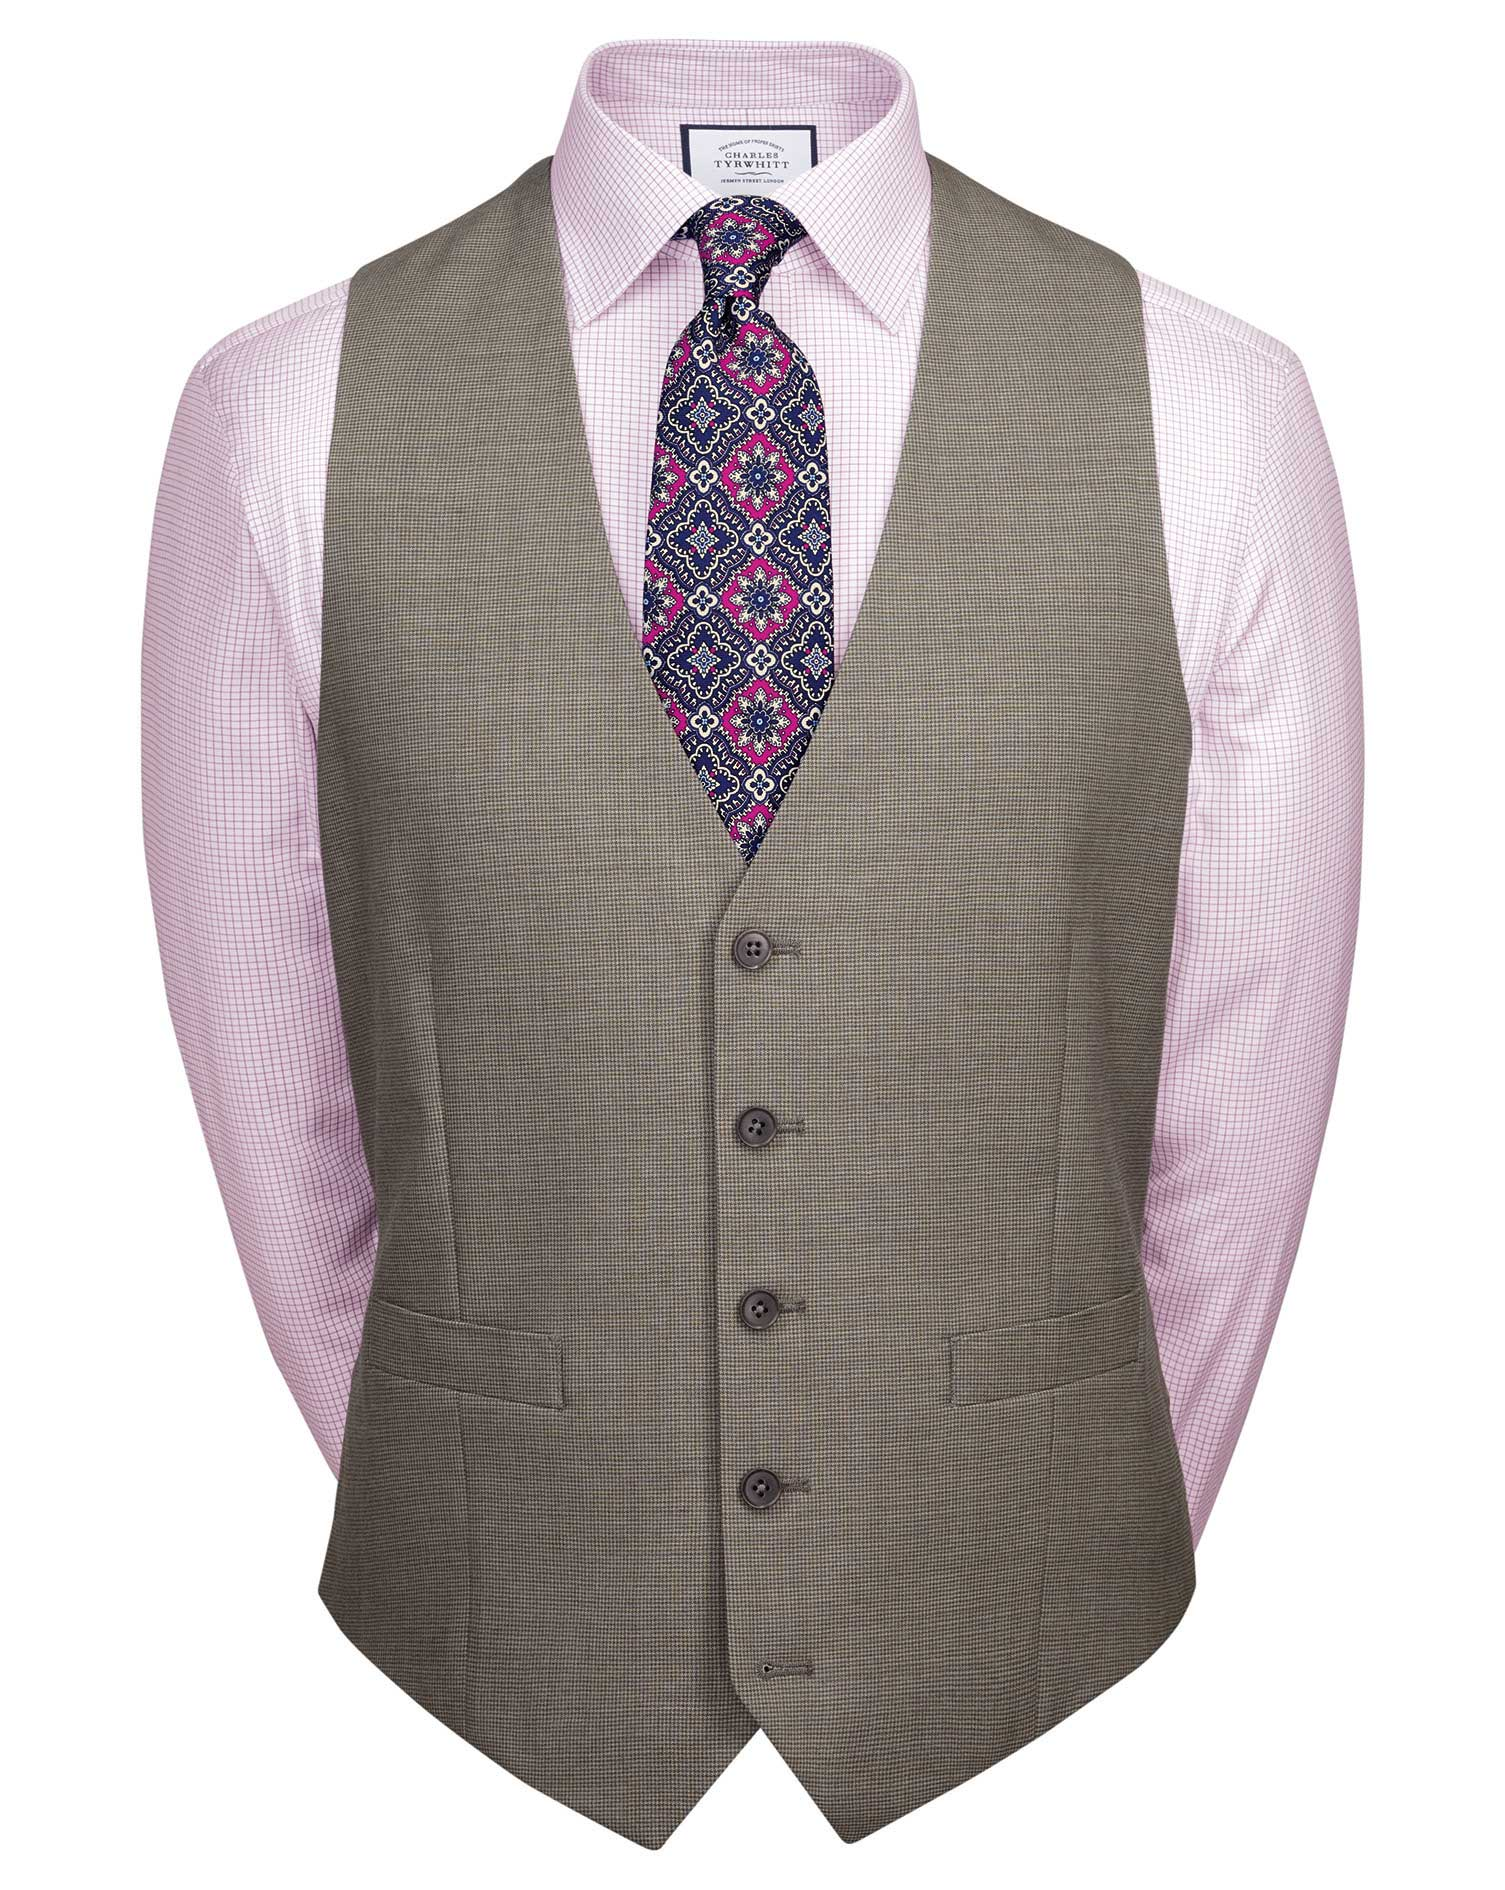 Natural Puppytooth Slim Fit Panama Business Suit Wool Waistcoat Size w42 by Charles Tyrwhitt